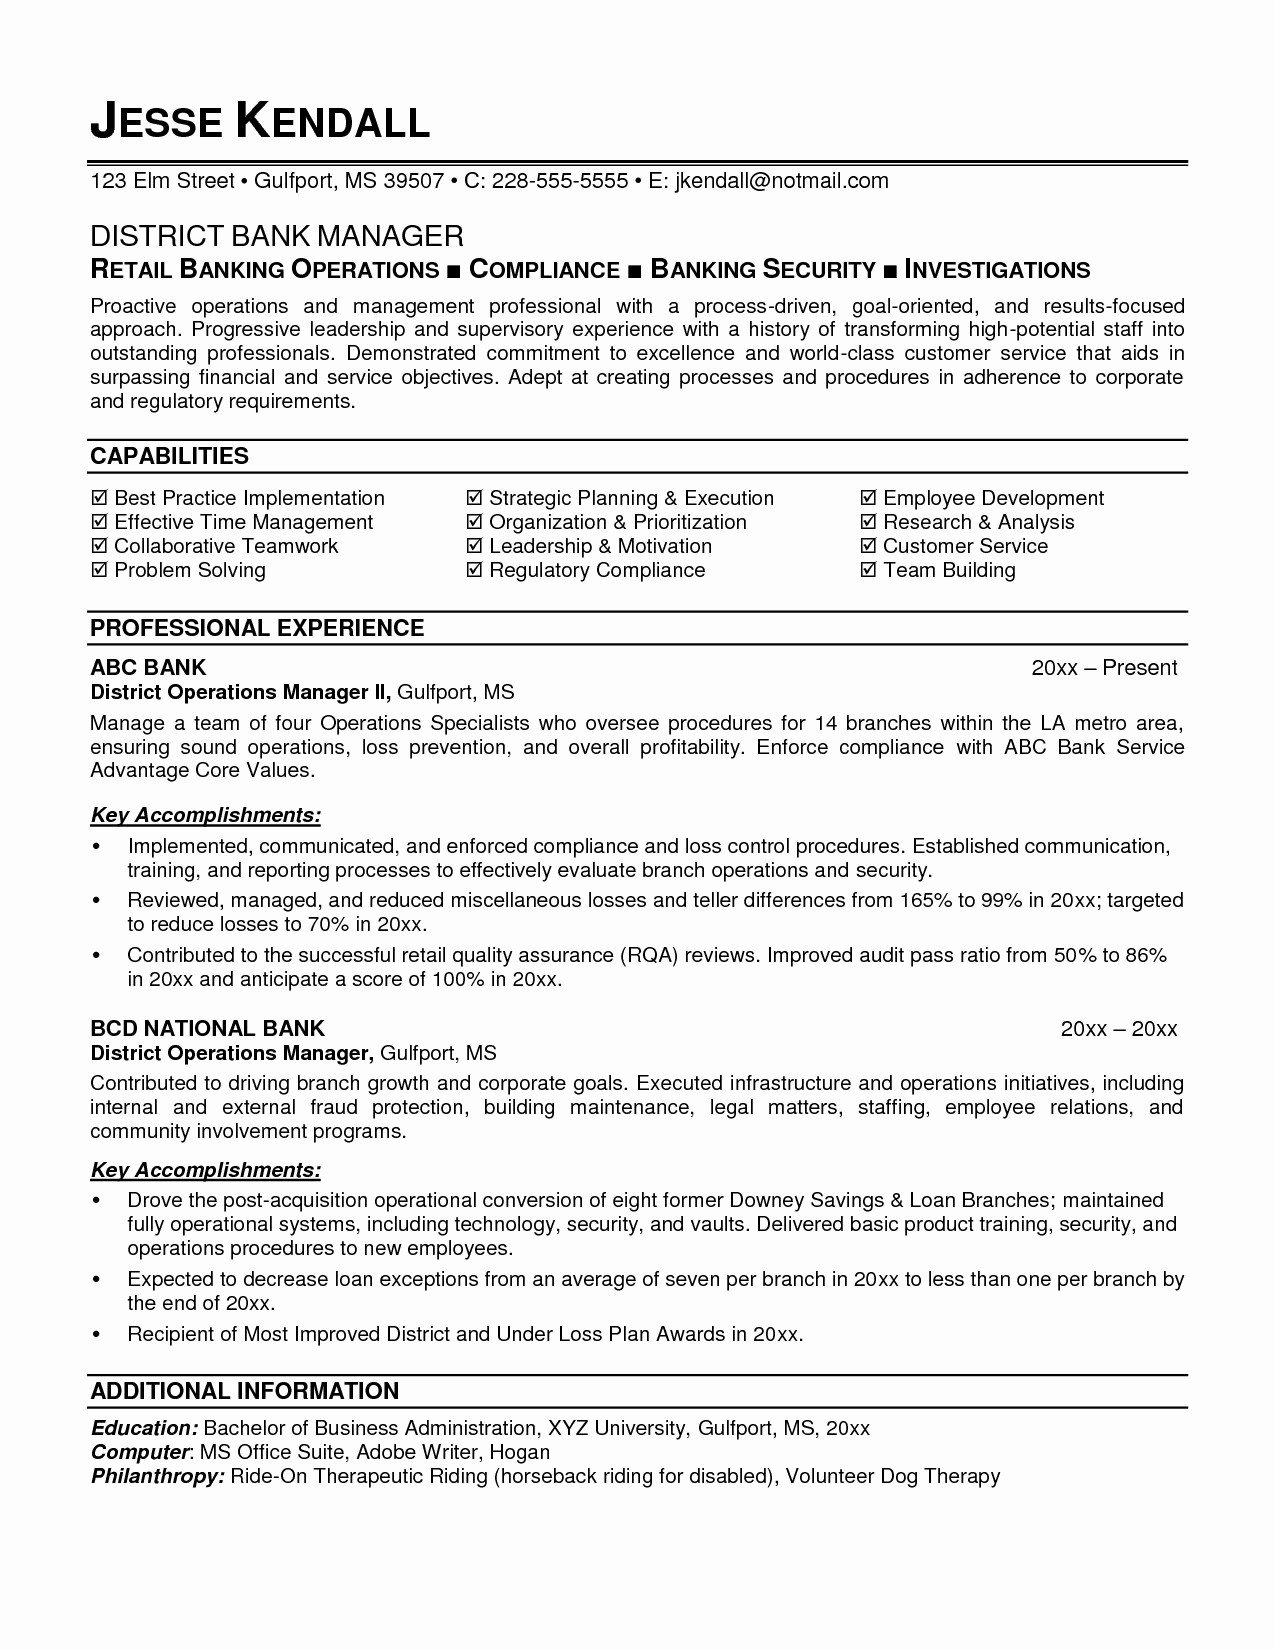 Cyber Security Entry Level Resume - Entry Level Cyber Security Resume